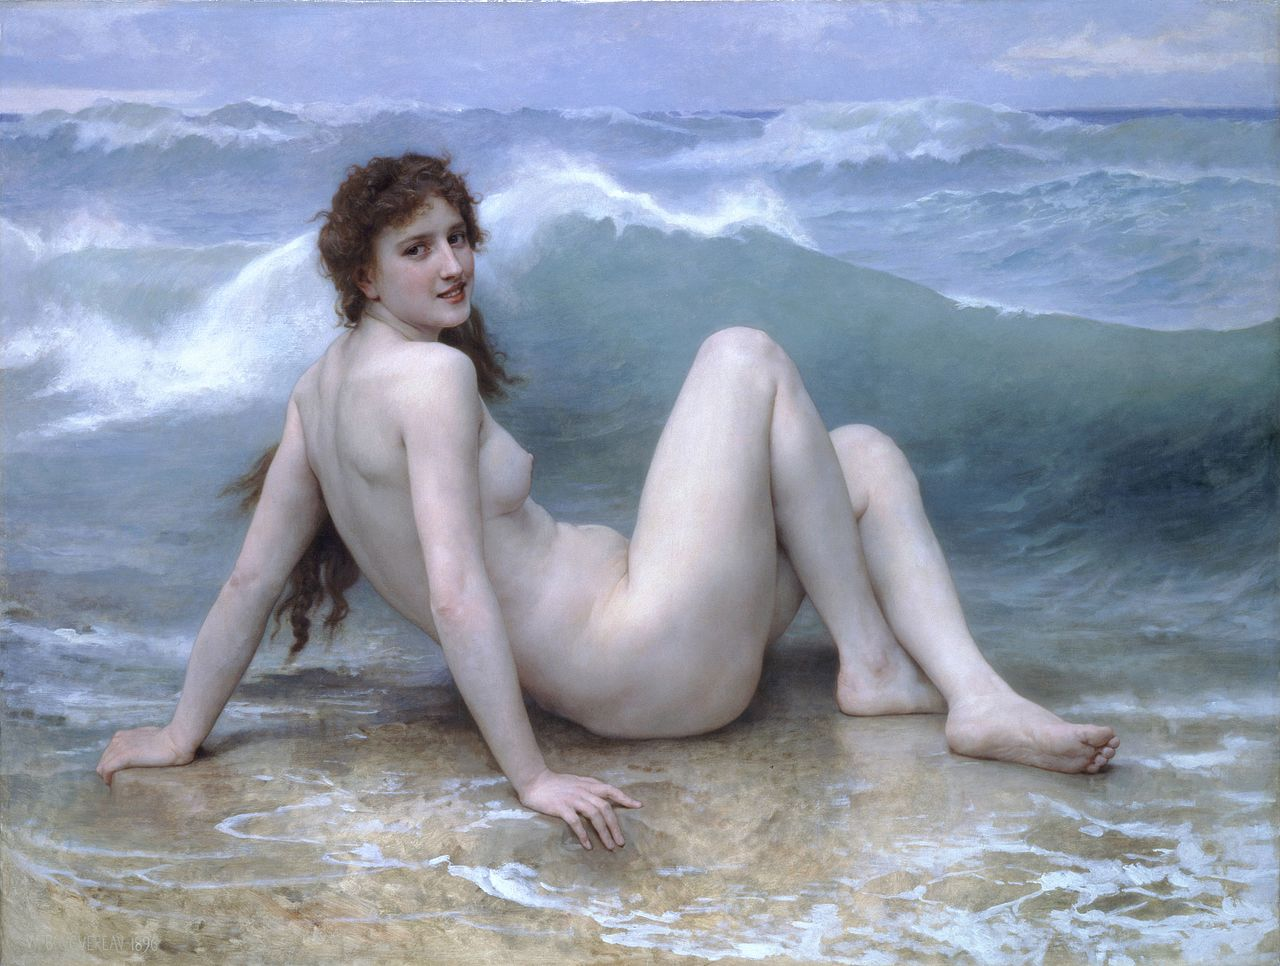 BOUGUEREAU, LE GRAND PEINTRE DU PIED-NUDISME 1280px-William-Adolphe_Bouguereau_%281825-1905%29_-_The_Wave_%281896%29